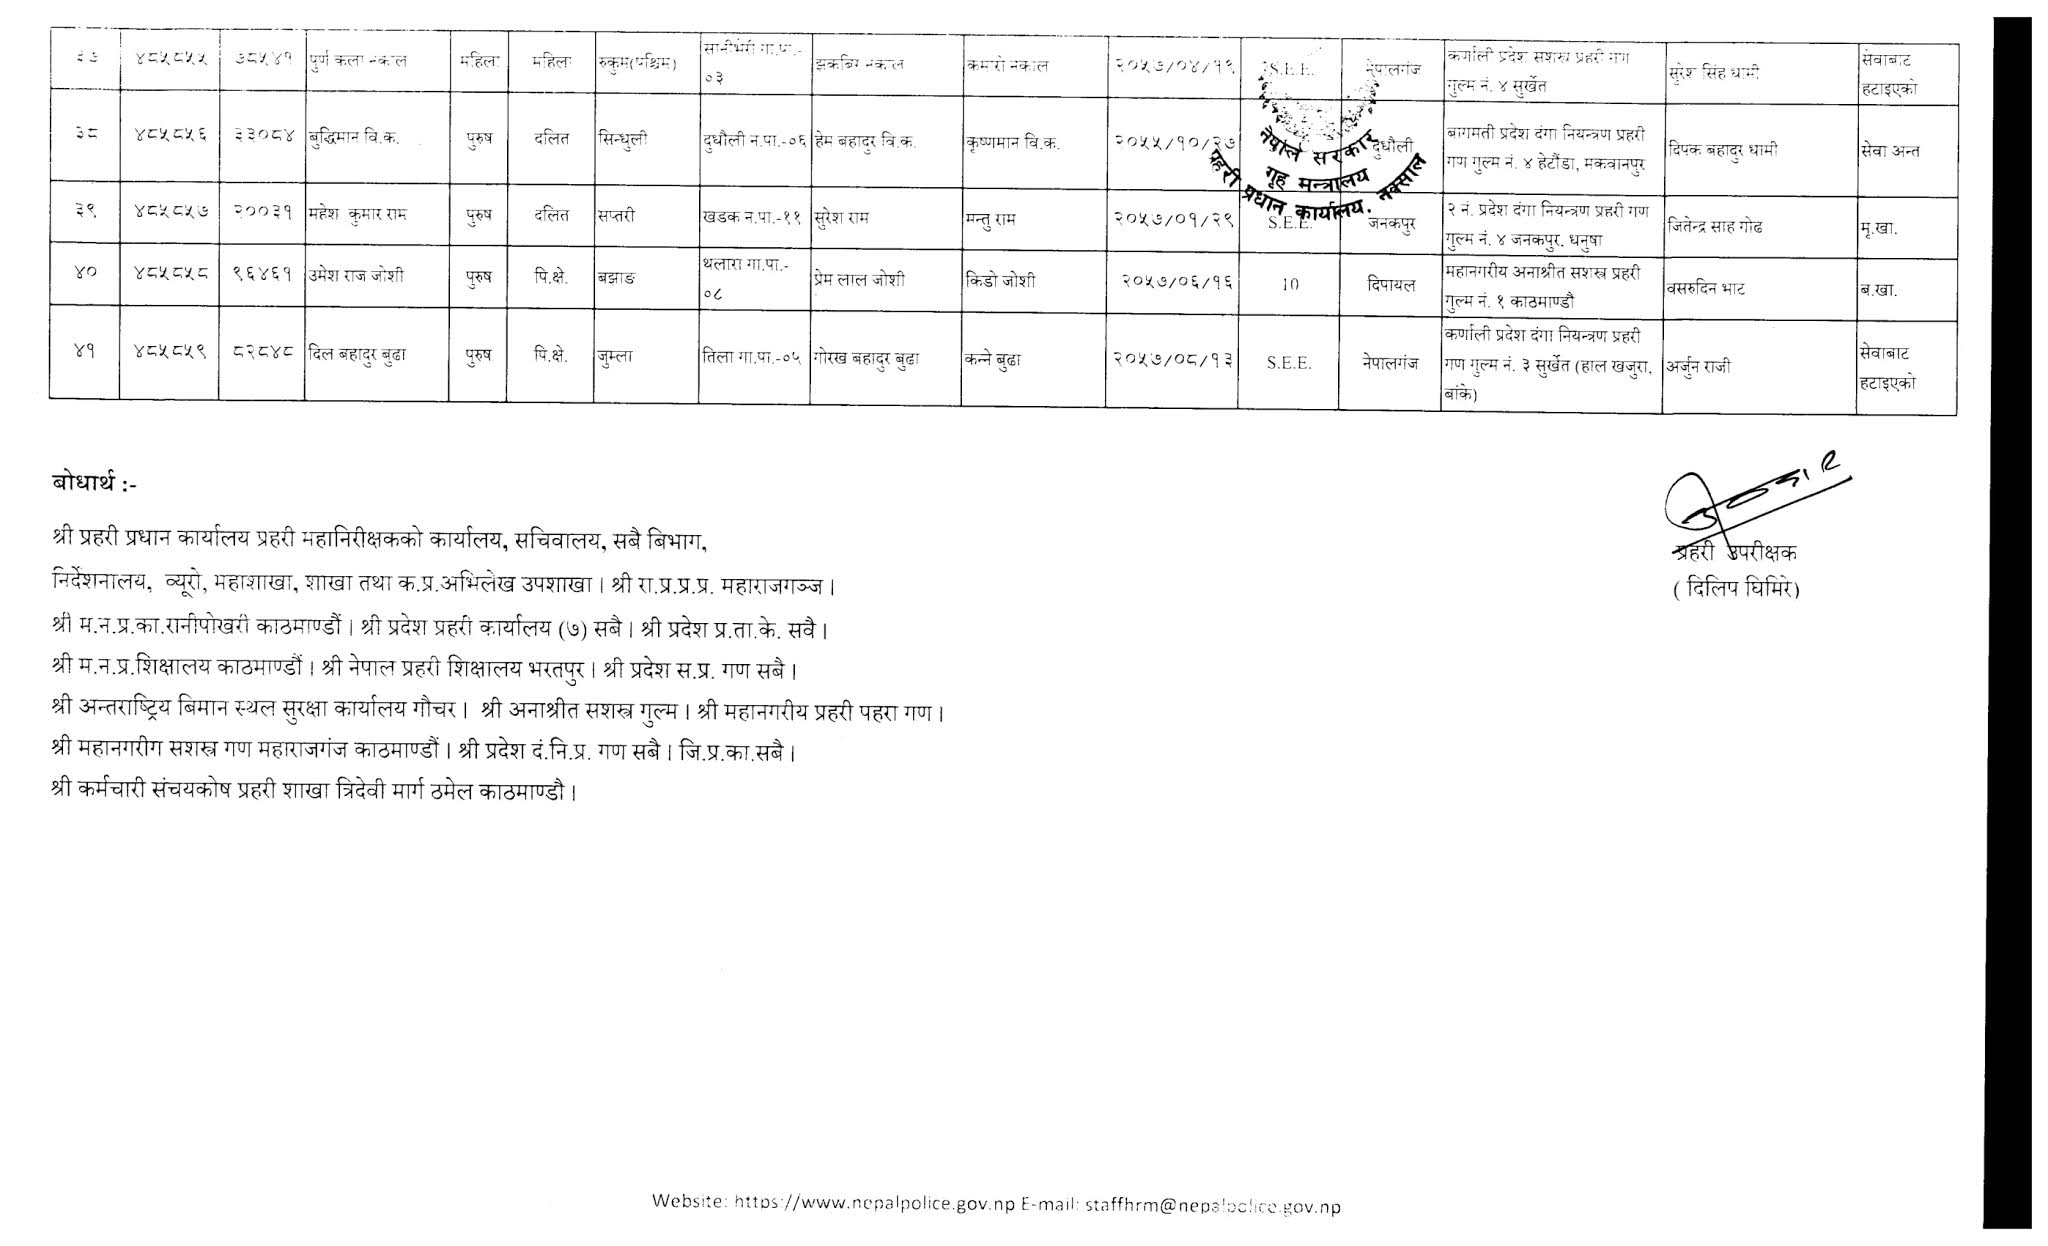 Police Constable Appointment & Posting List: